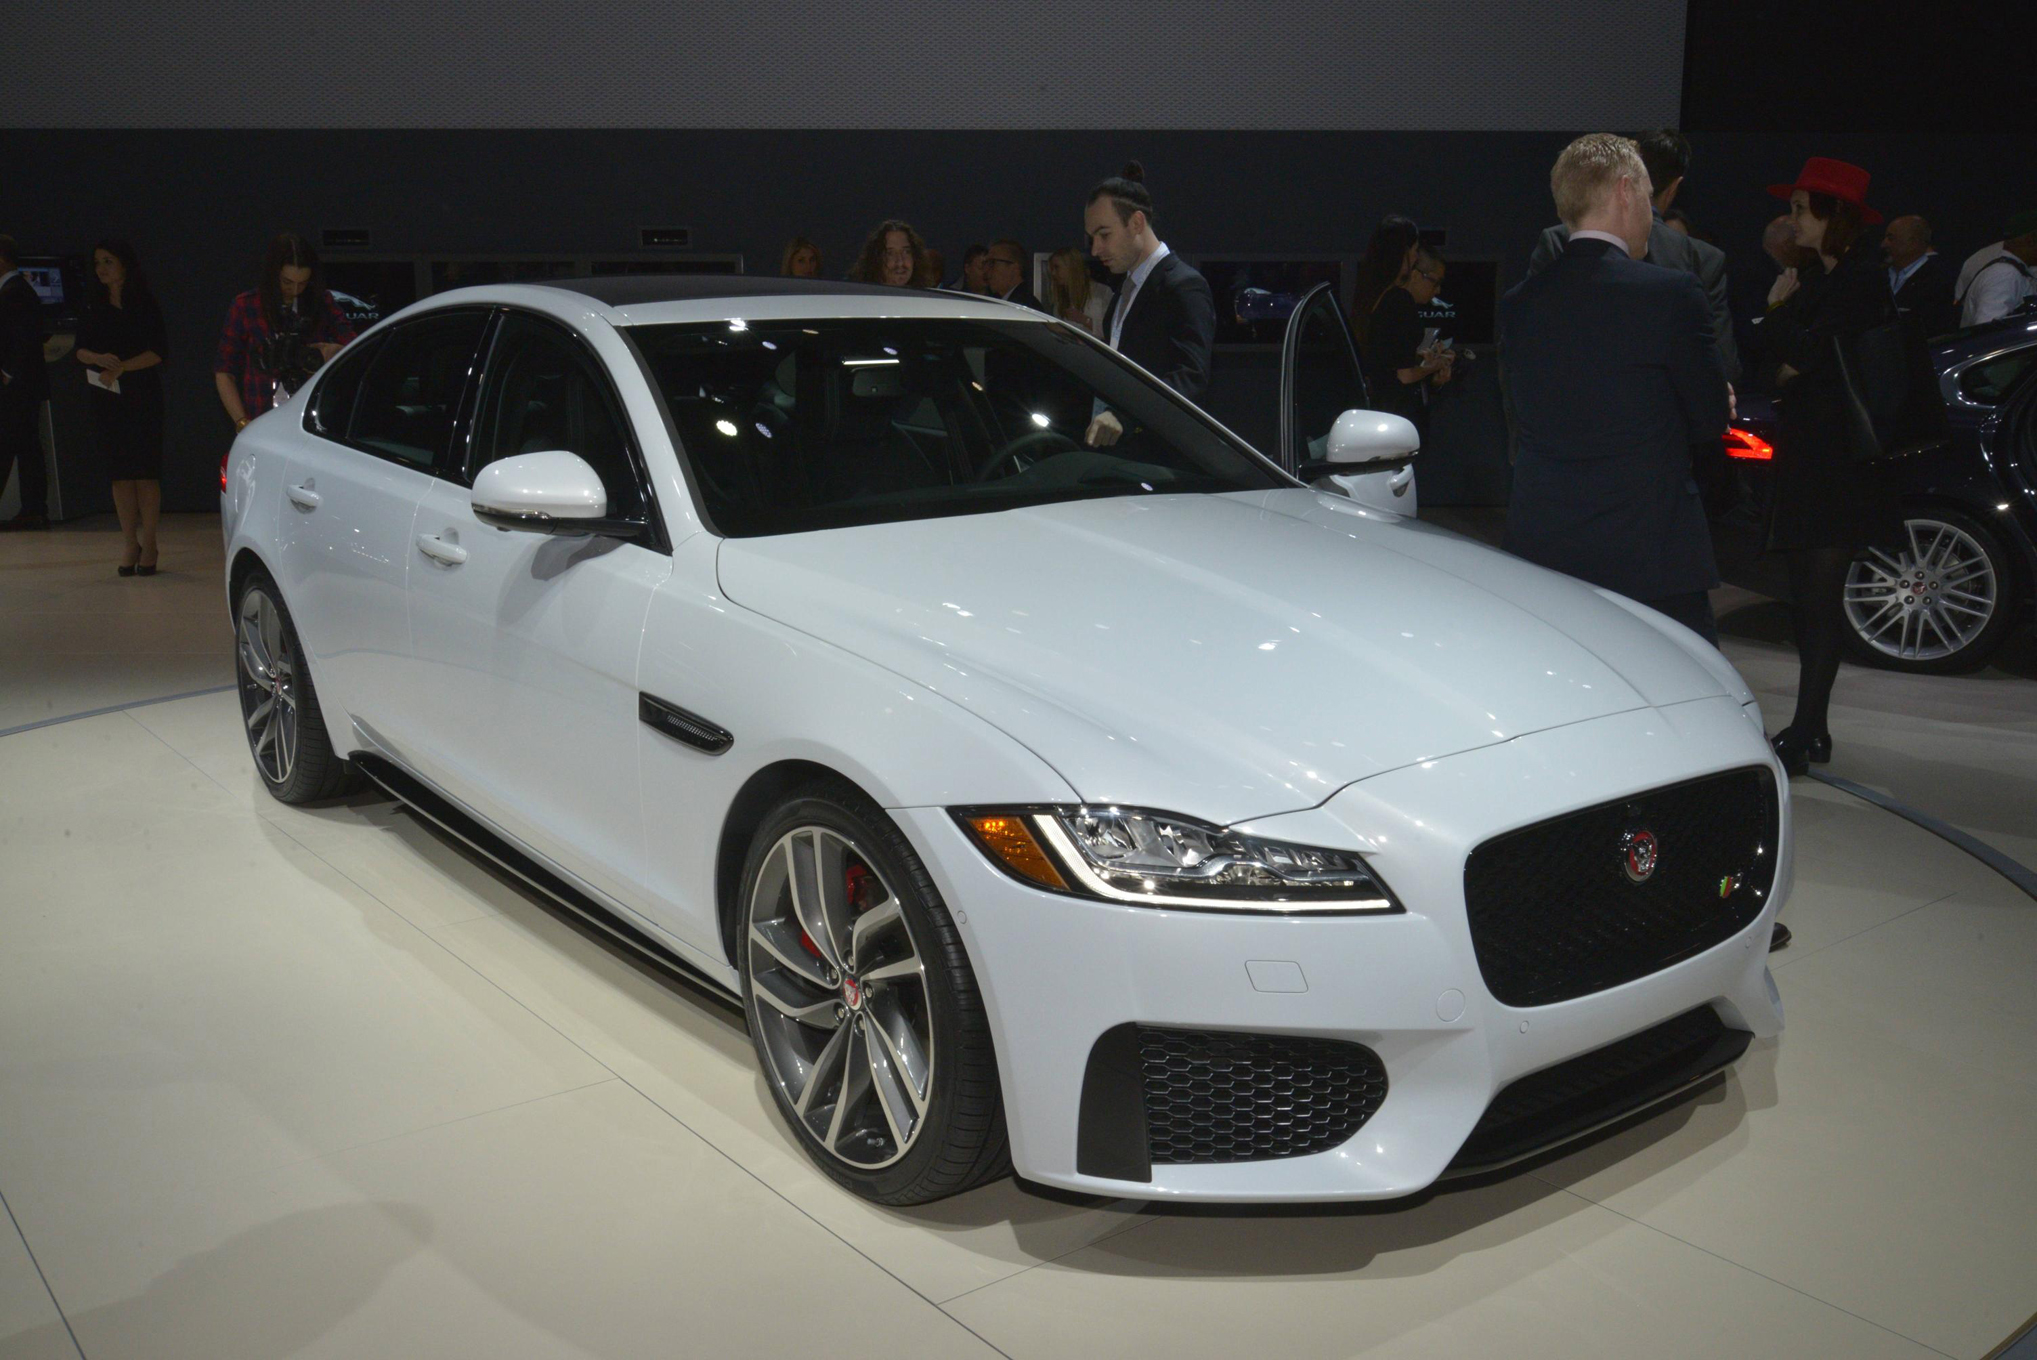 11 things to know about the 2016 jaguar xf - motortrend